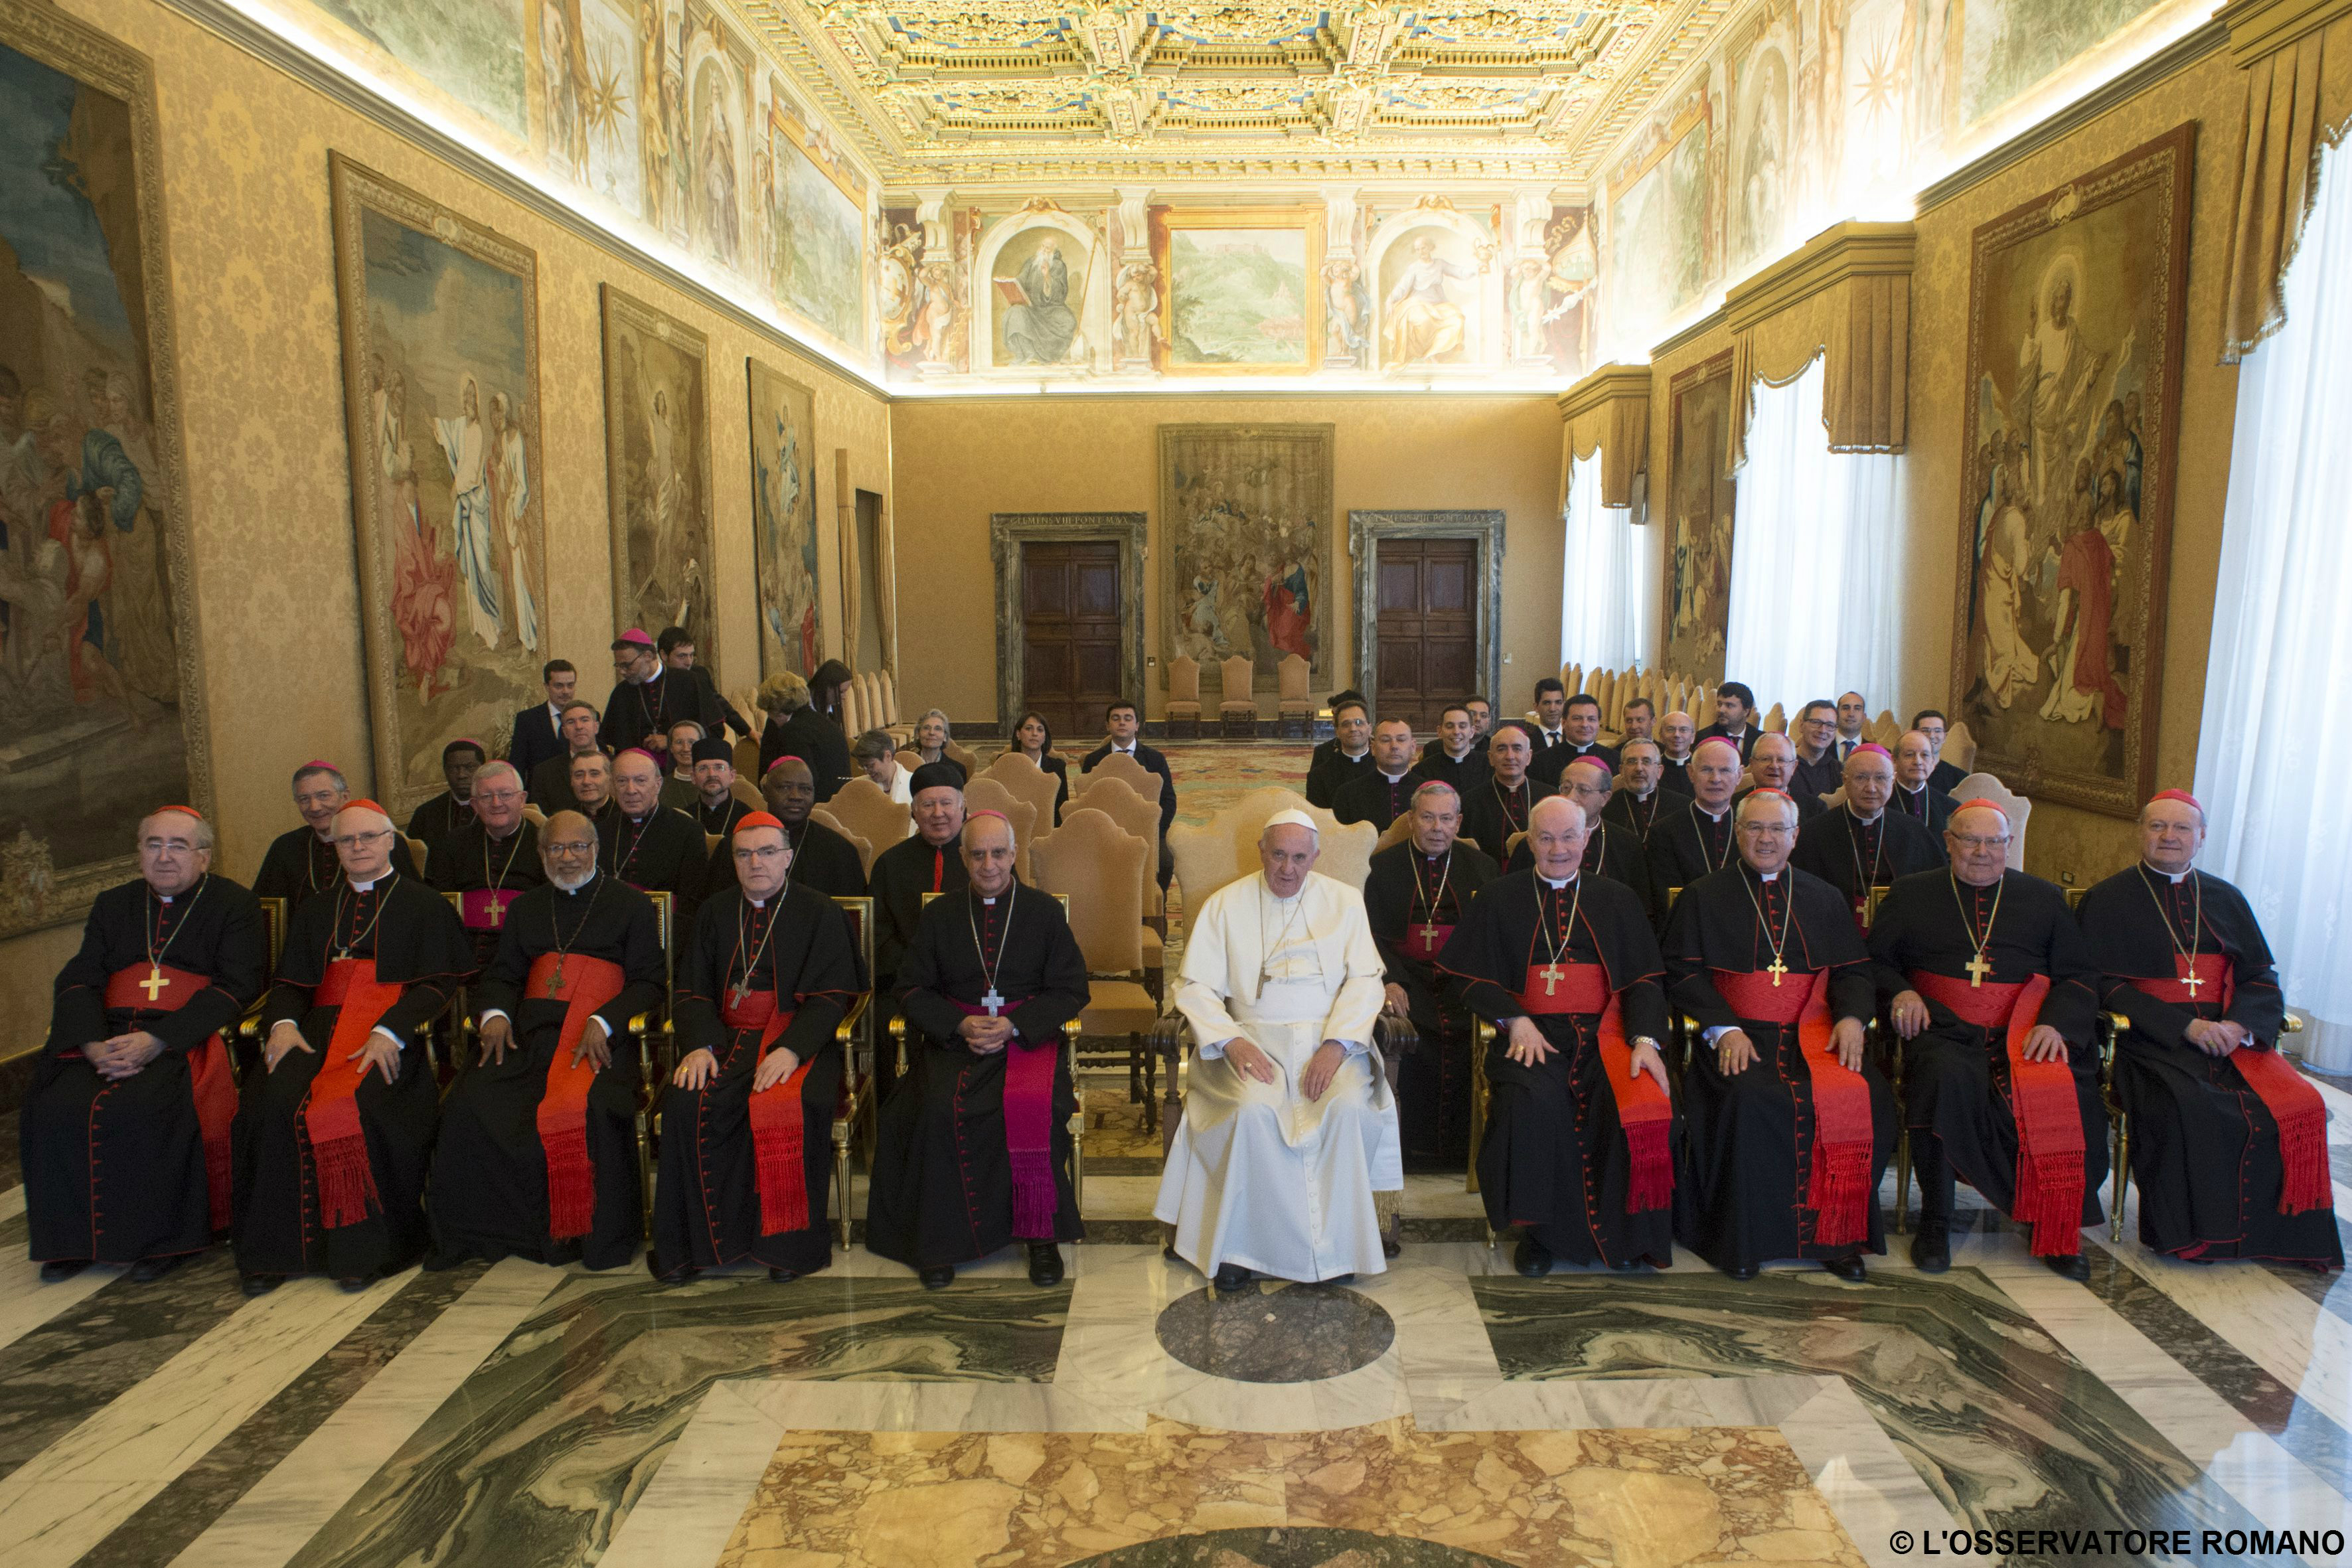 Pope Francis met today with participants of the Plenary Assembly of the Pontifical Council for Promoting the New Evangelization